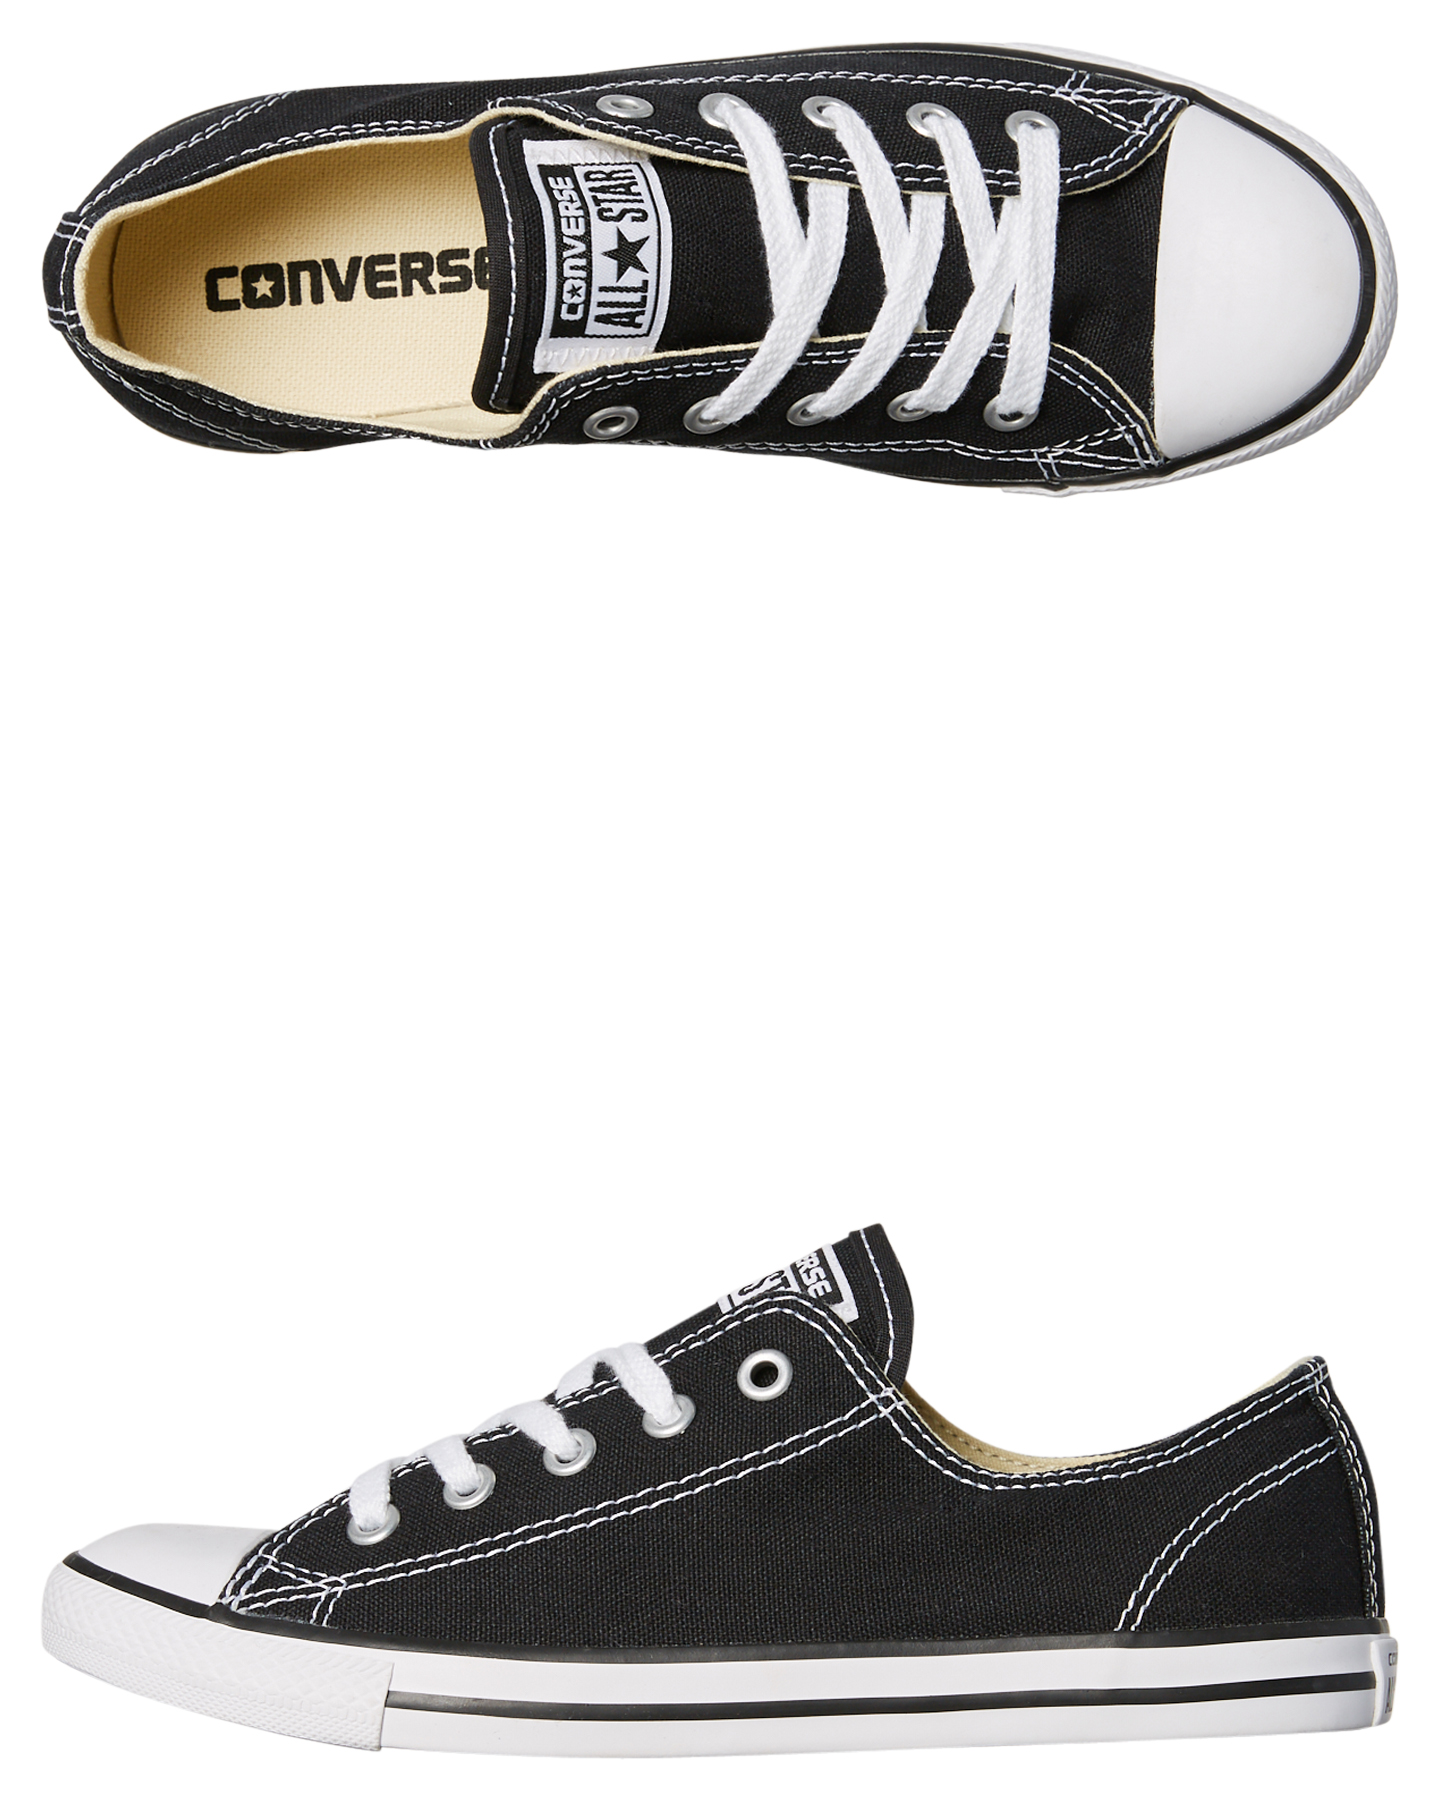 371c55b5a9d8 Converse Chuck Taylor Womens All Star Dainty Lo Shoe - Black ...